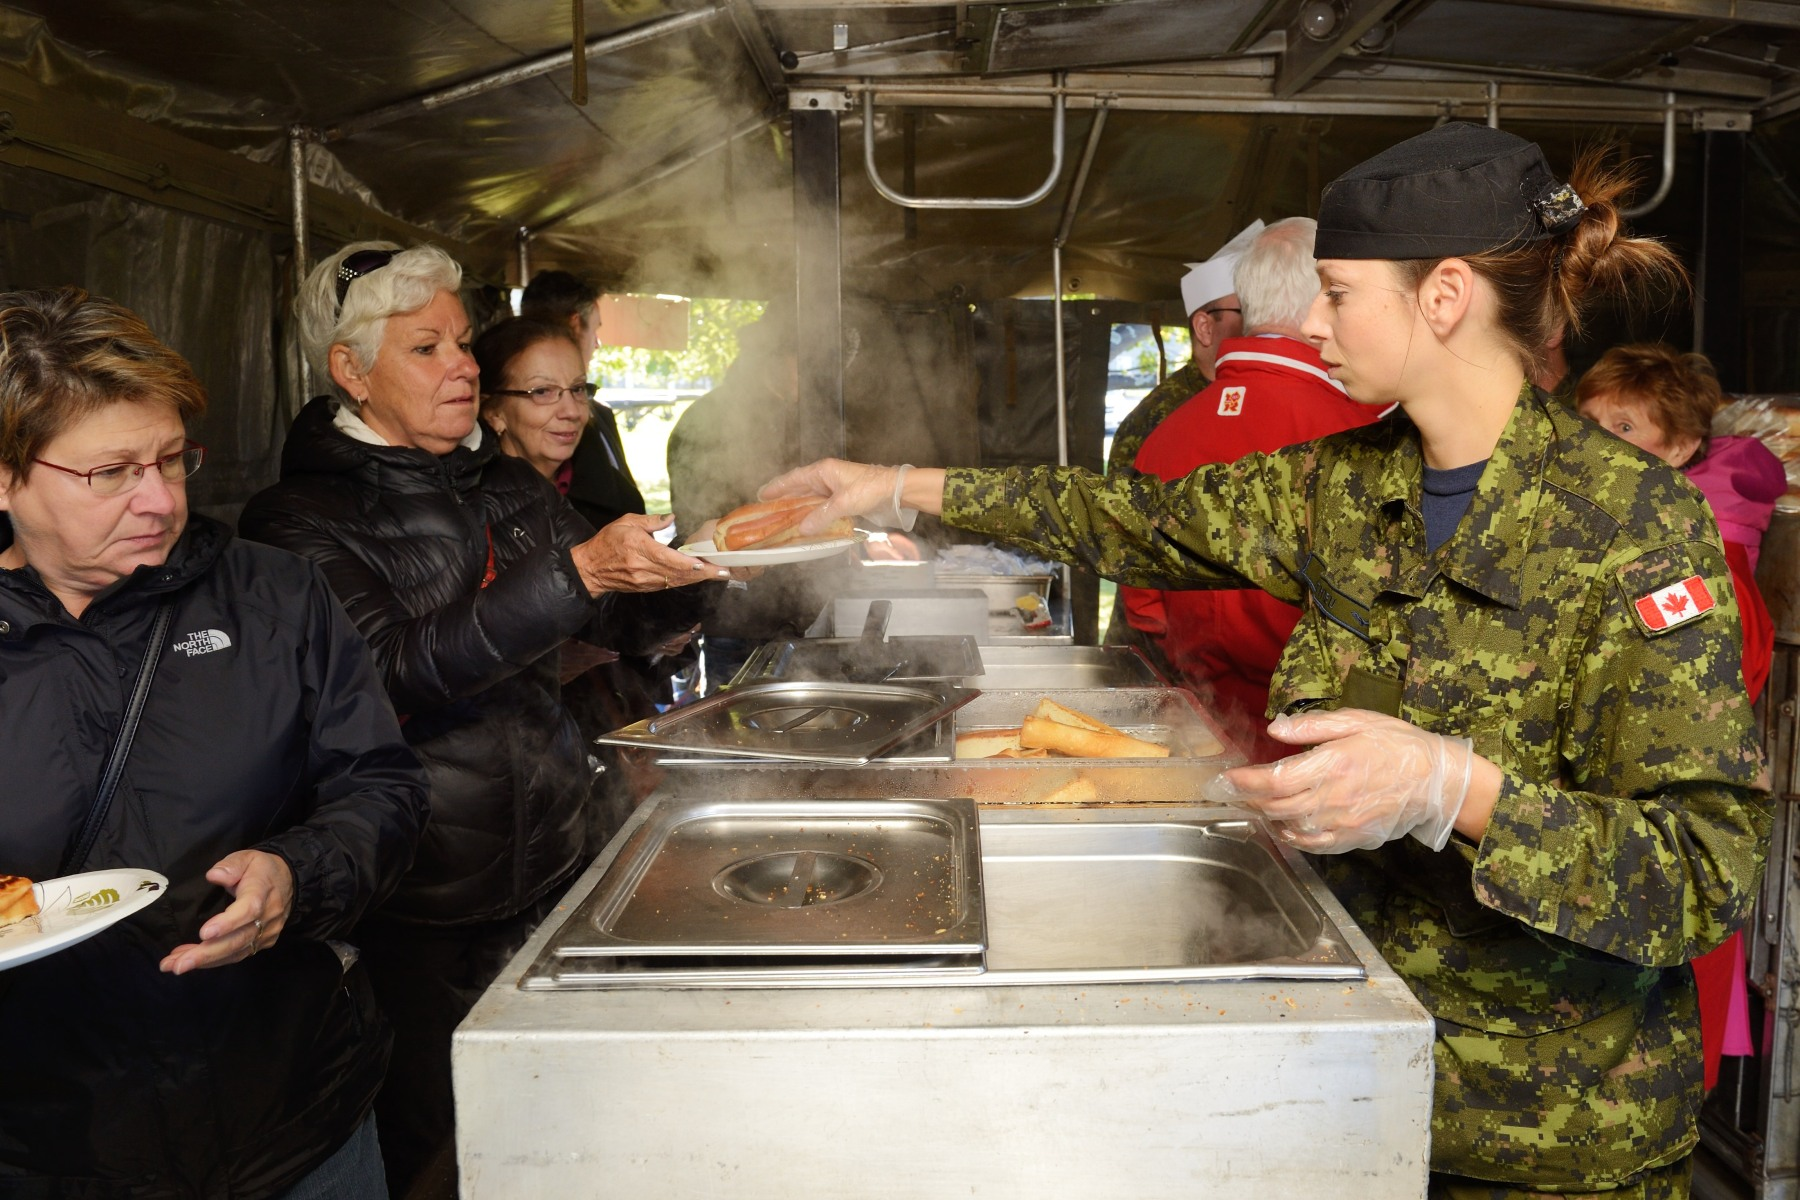 Visitors enjoyed hot food served by a field kitchen.